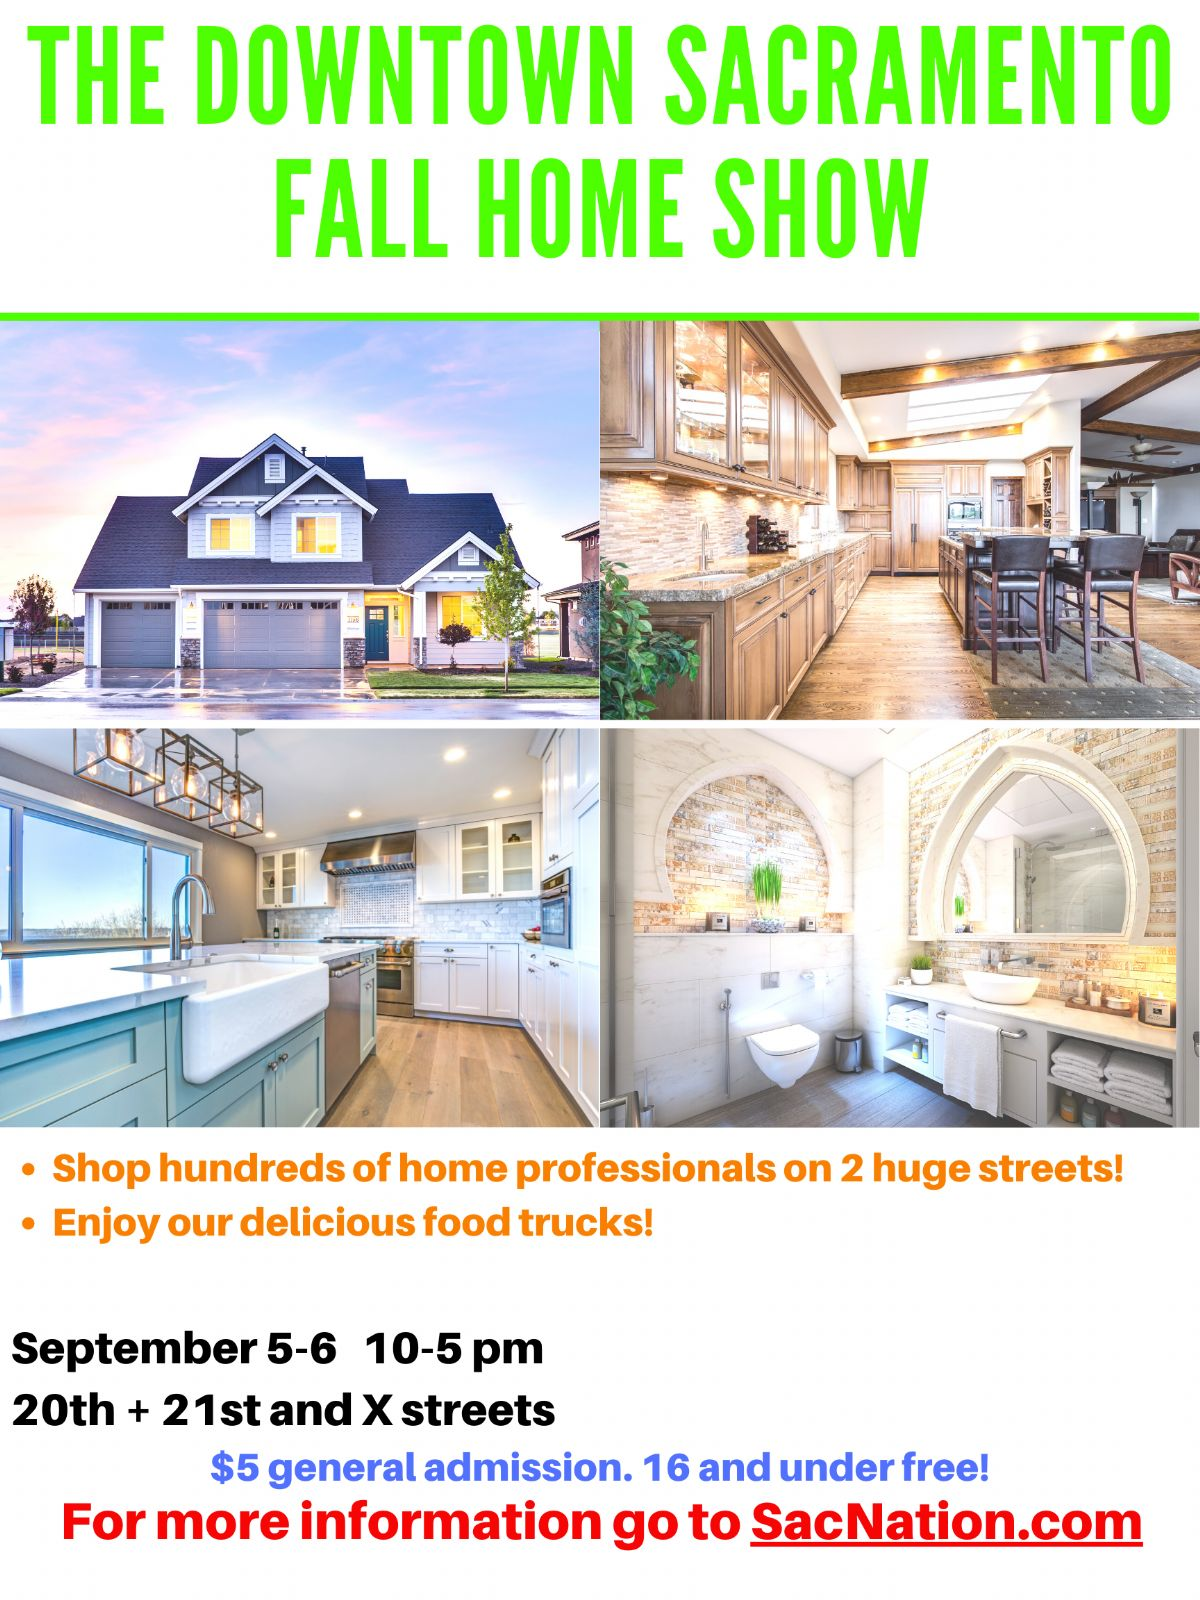 The Downtown Sacramento Fall Home Show